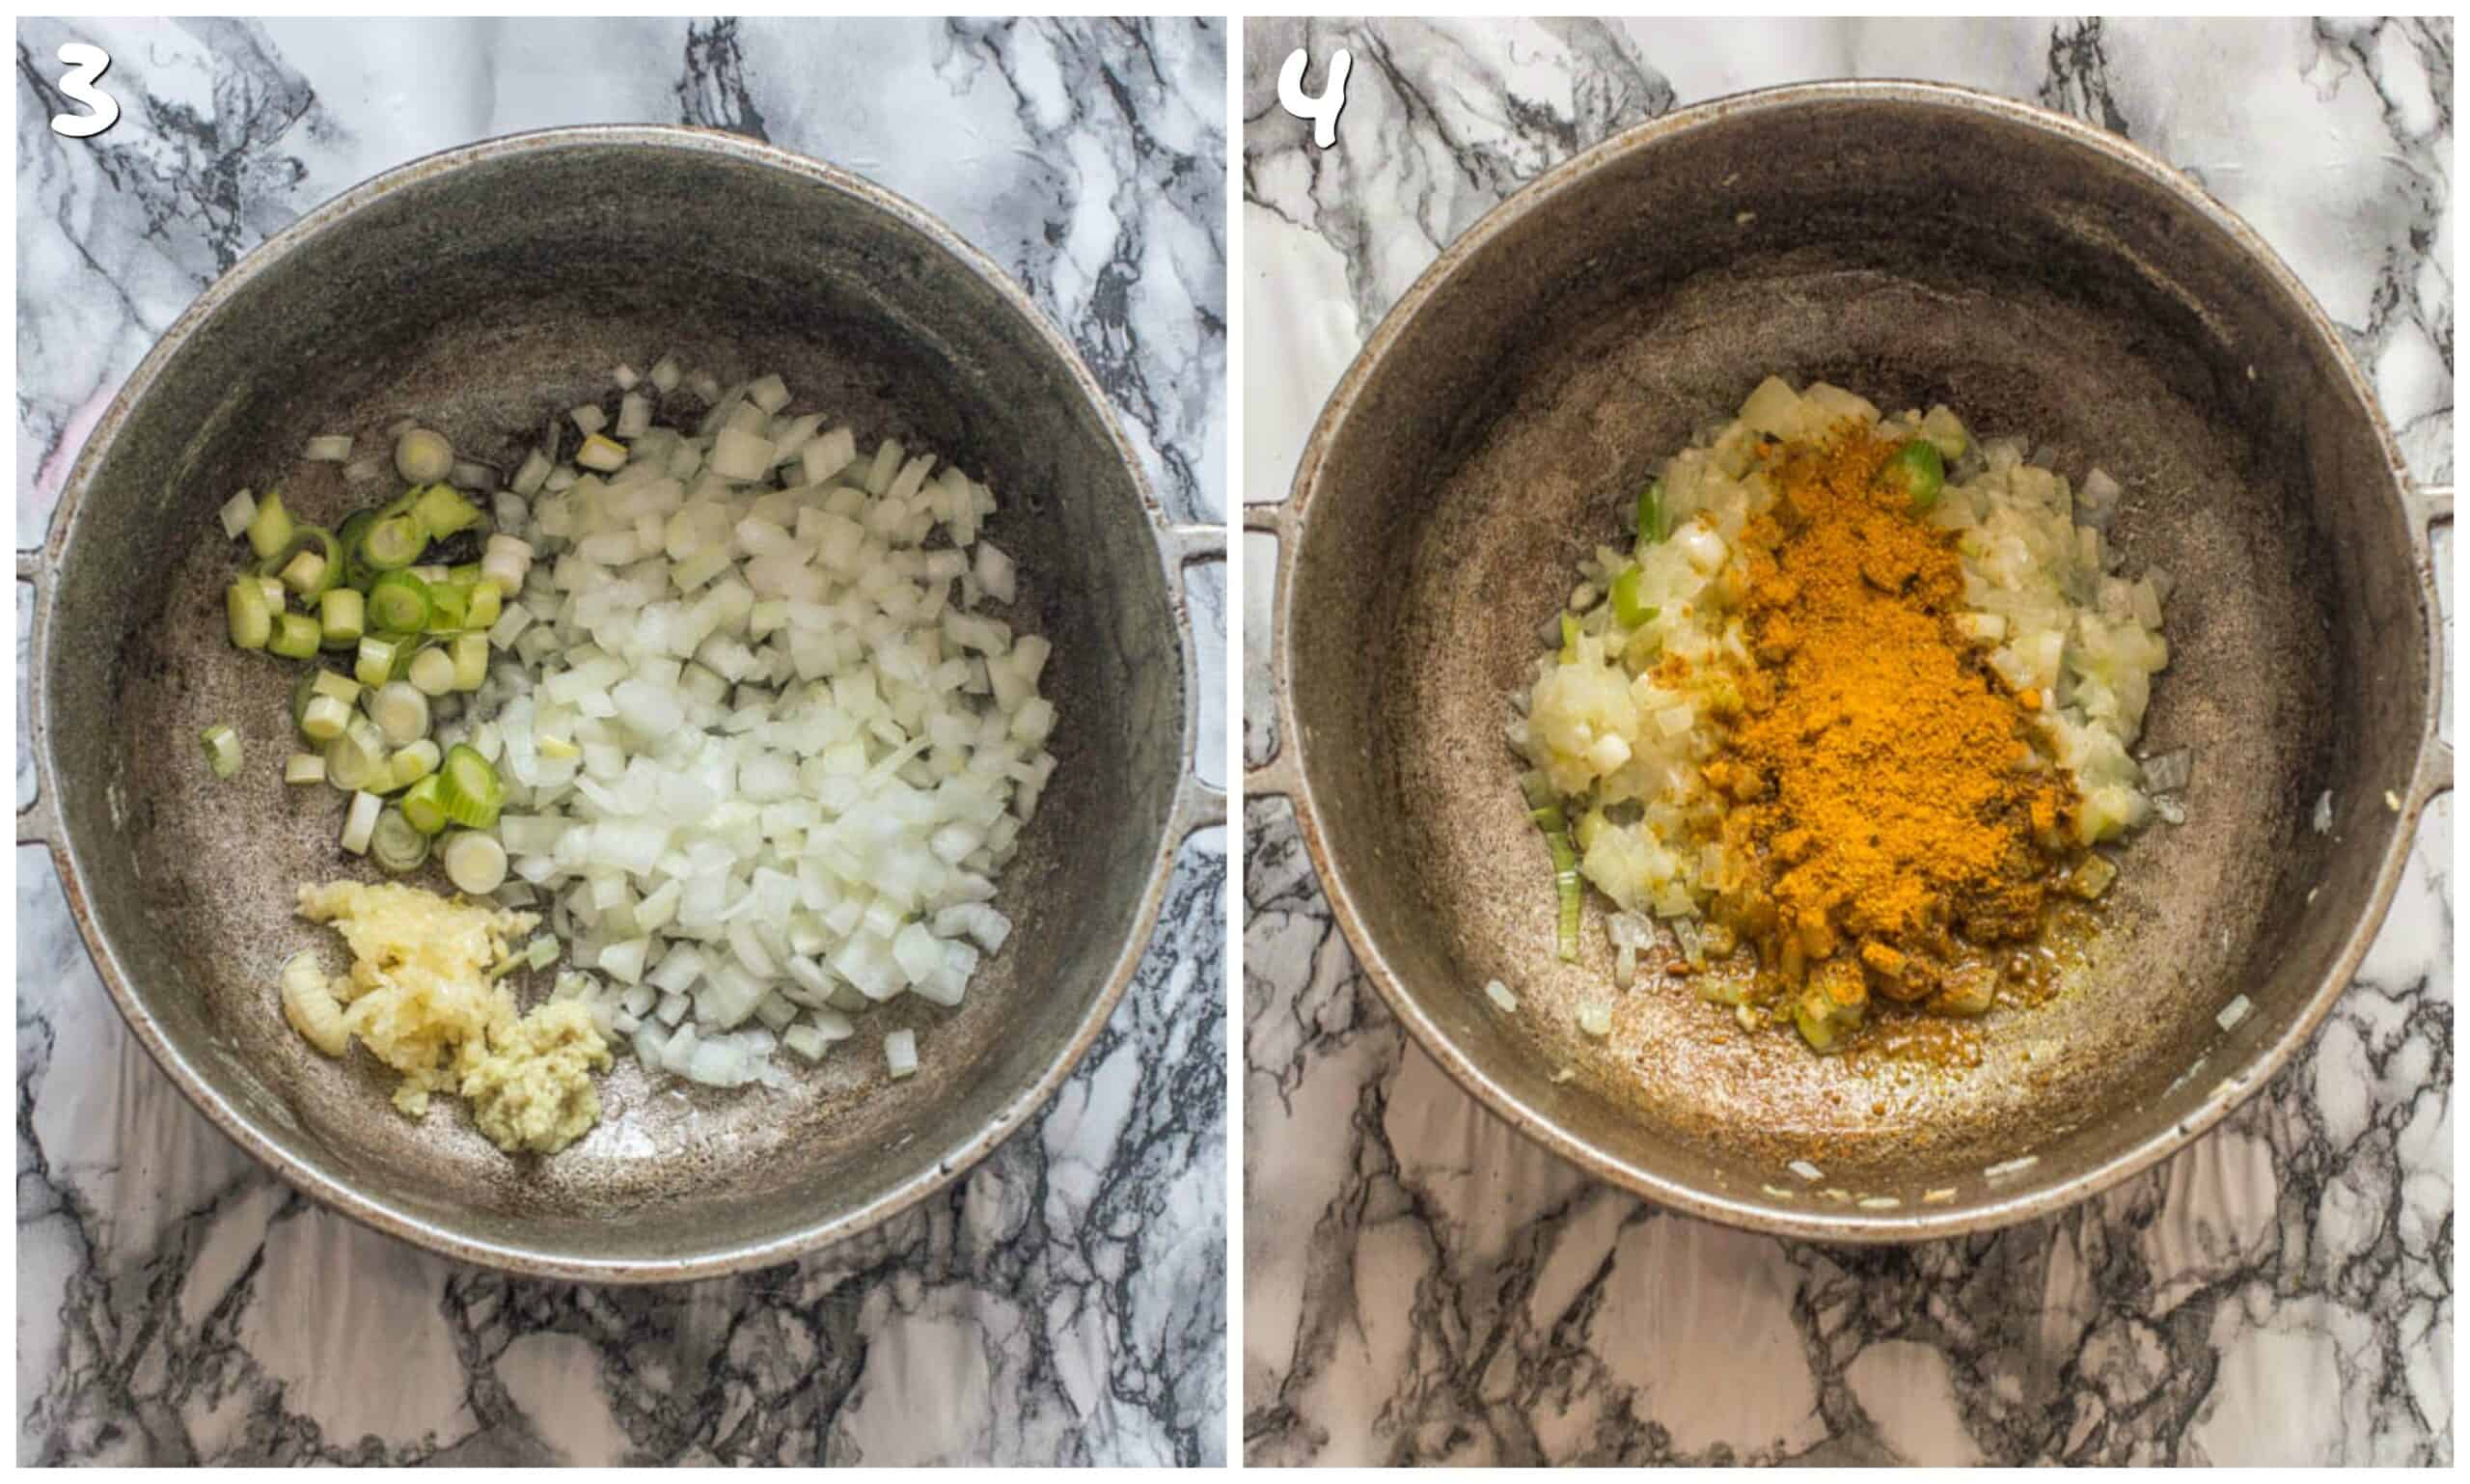 steps 3-4 sauteing onions and curry powder